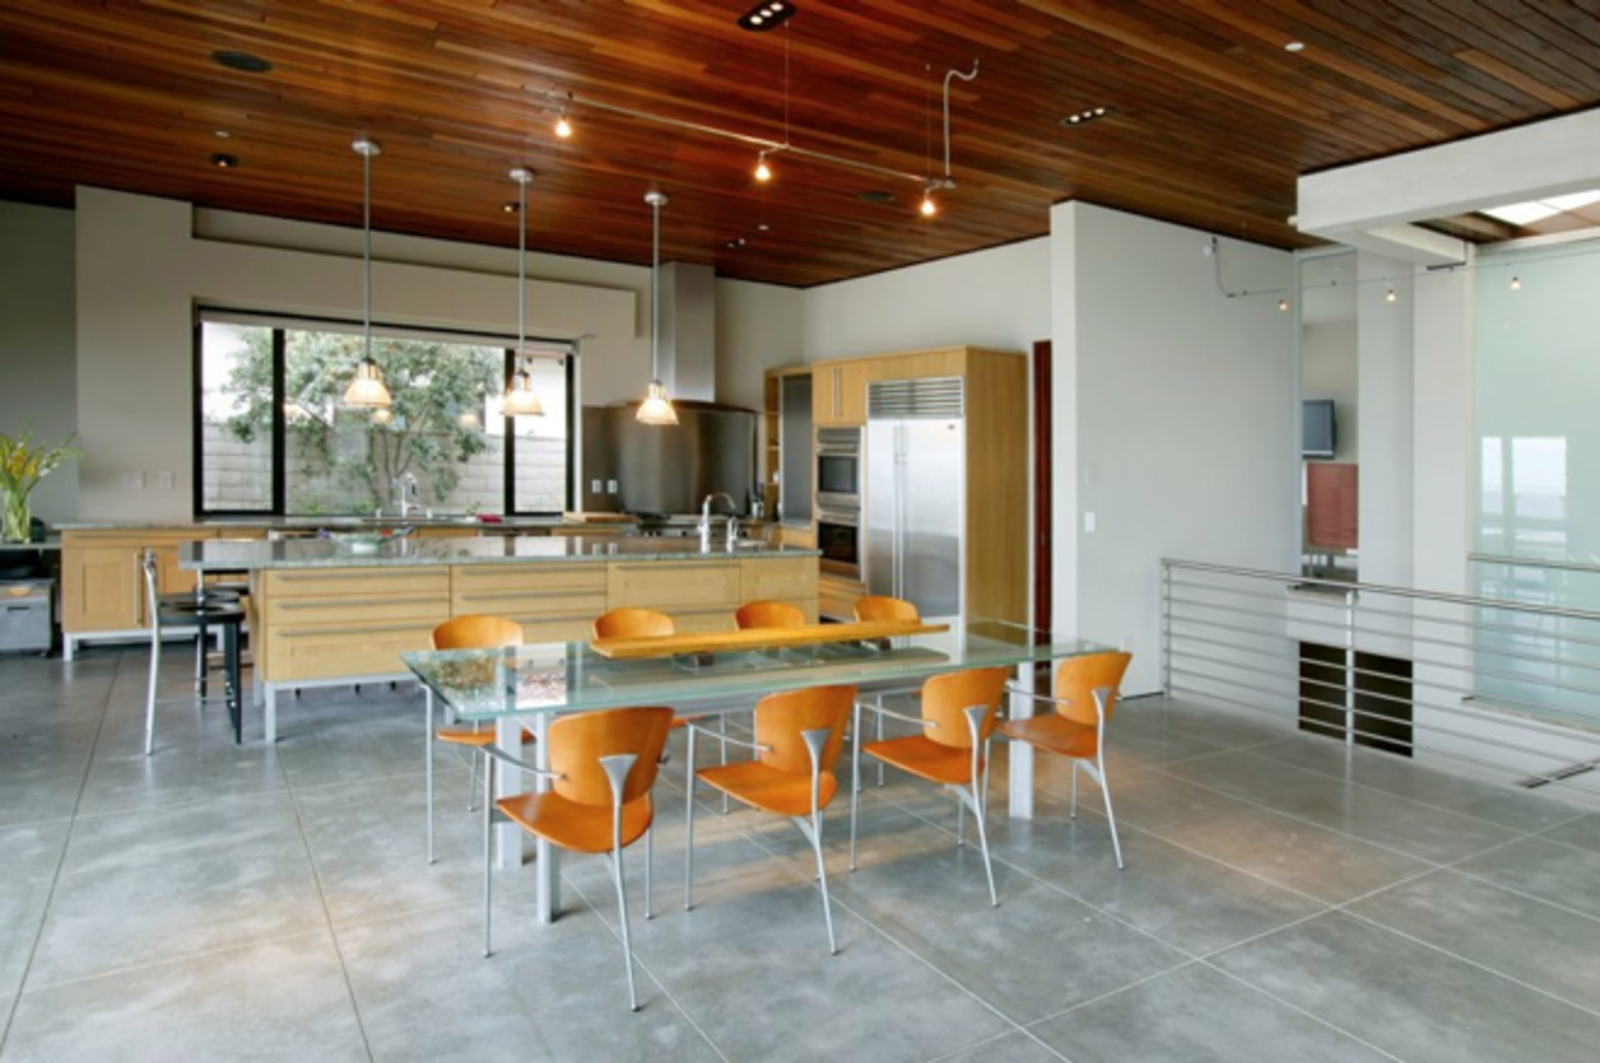 A kitchen design by Mark Singer, who will be talking about how the kitchen is the heart of the home at the Pacific Design Center on June 22nd.  Photo 2 of 3 in Dwell Design Week